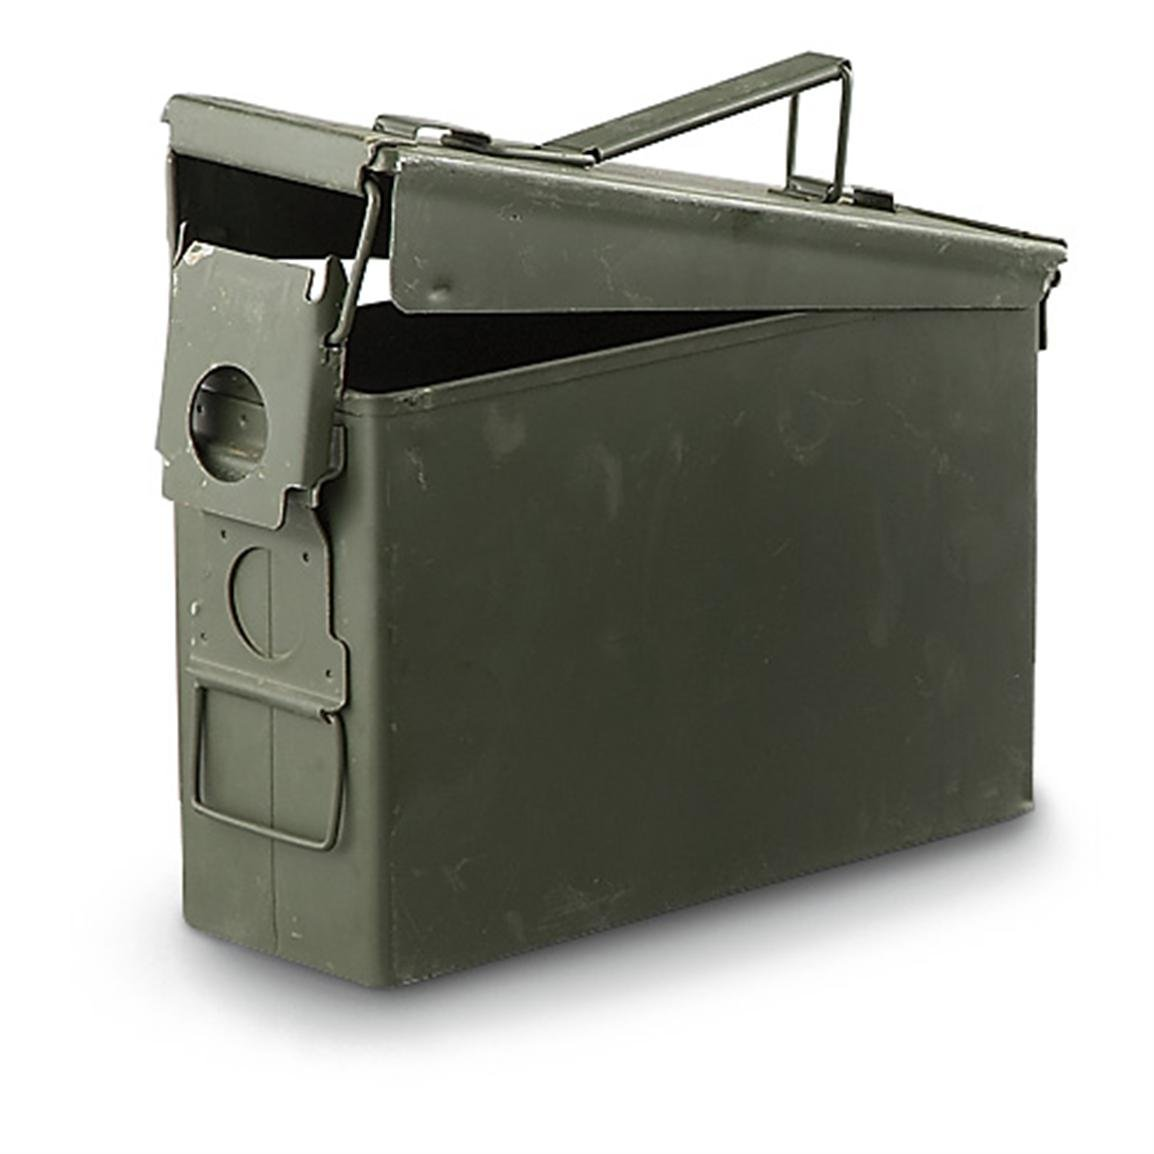 Military Outdoor Clothing Previously Issued U.S. G.I. 30-Caliber M19A1 Ammo Box